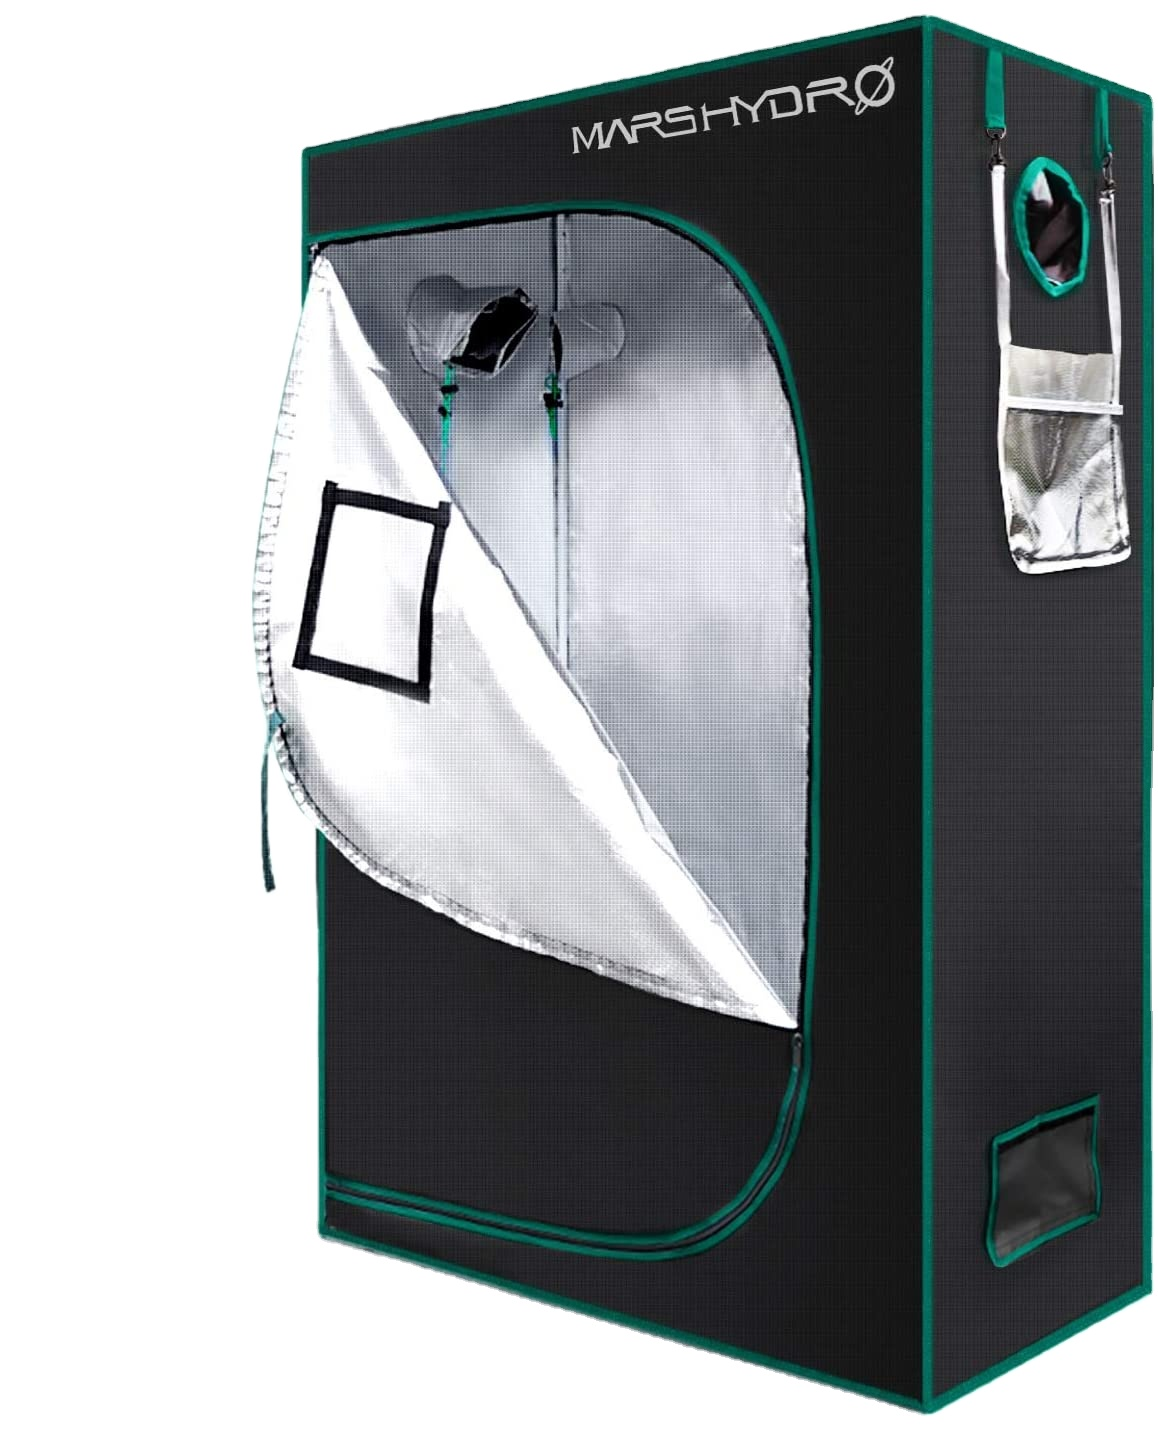 Shenzhen high quality hydroponic greenhouse indoor grow tent <strong>120</strong> box grow dark room